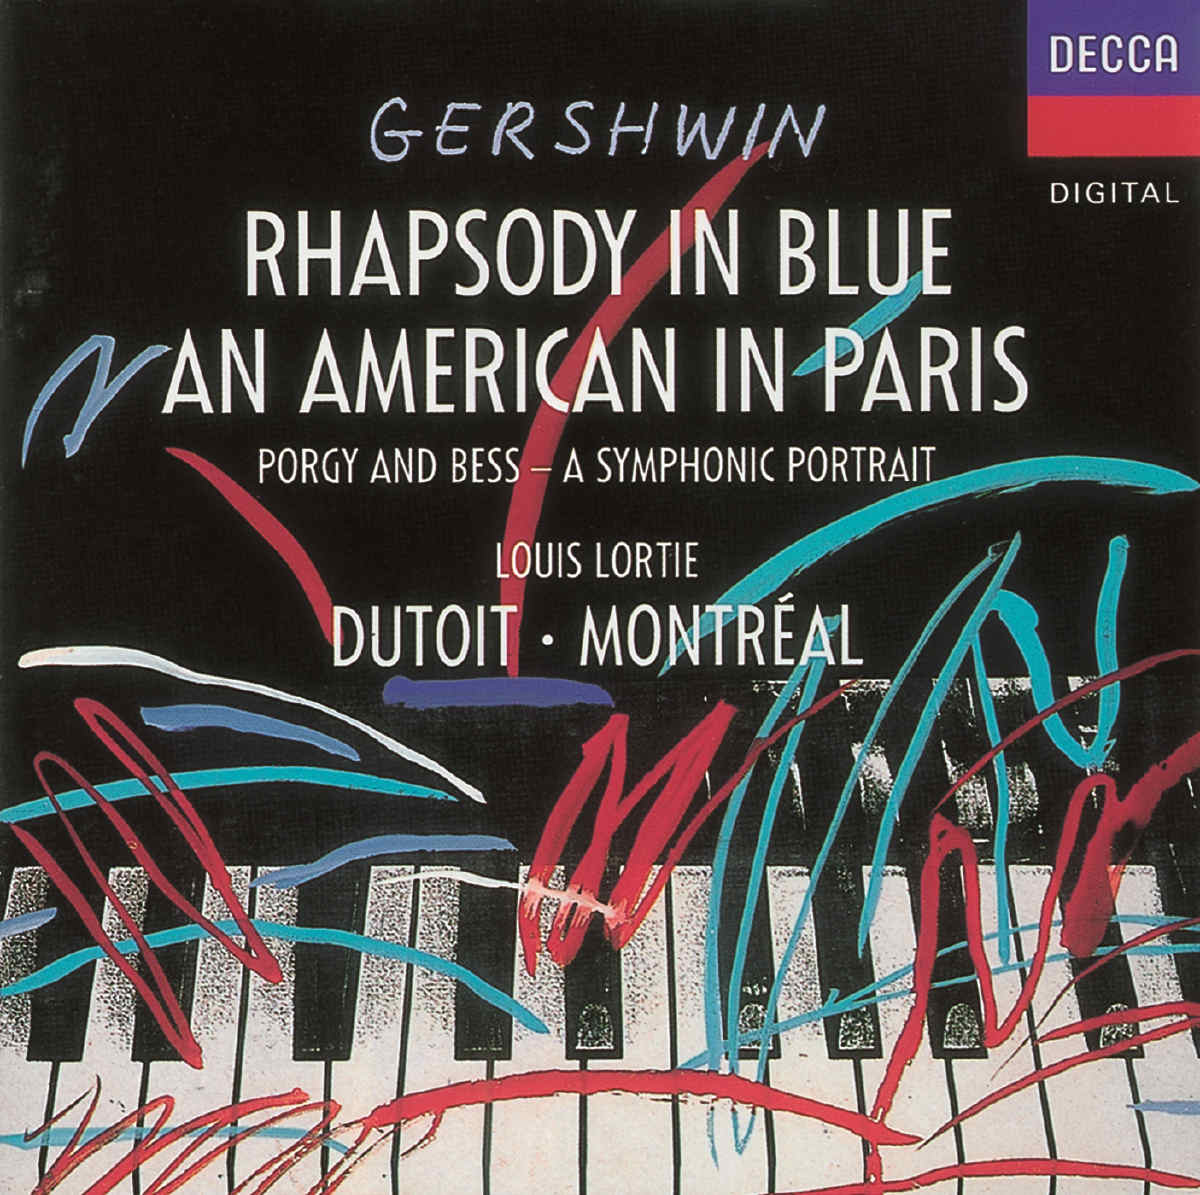 gershwin the toast of the american music scene This chapter presents the text of brooks atkinson and olin downes' review of the premiere of george gershwin's premiere on the american music scene.